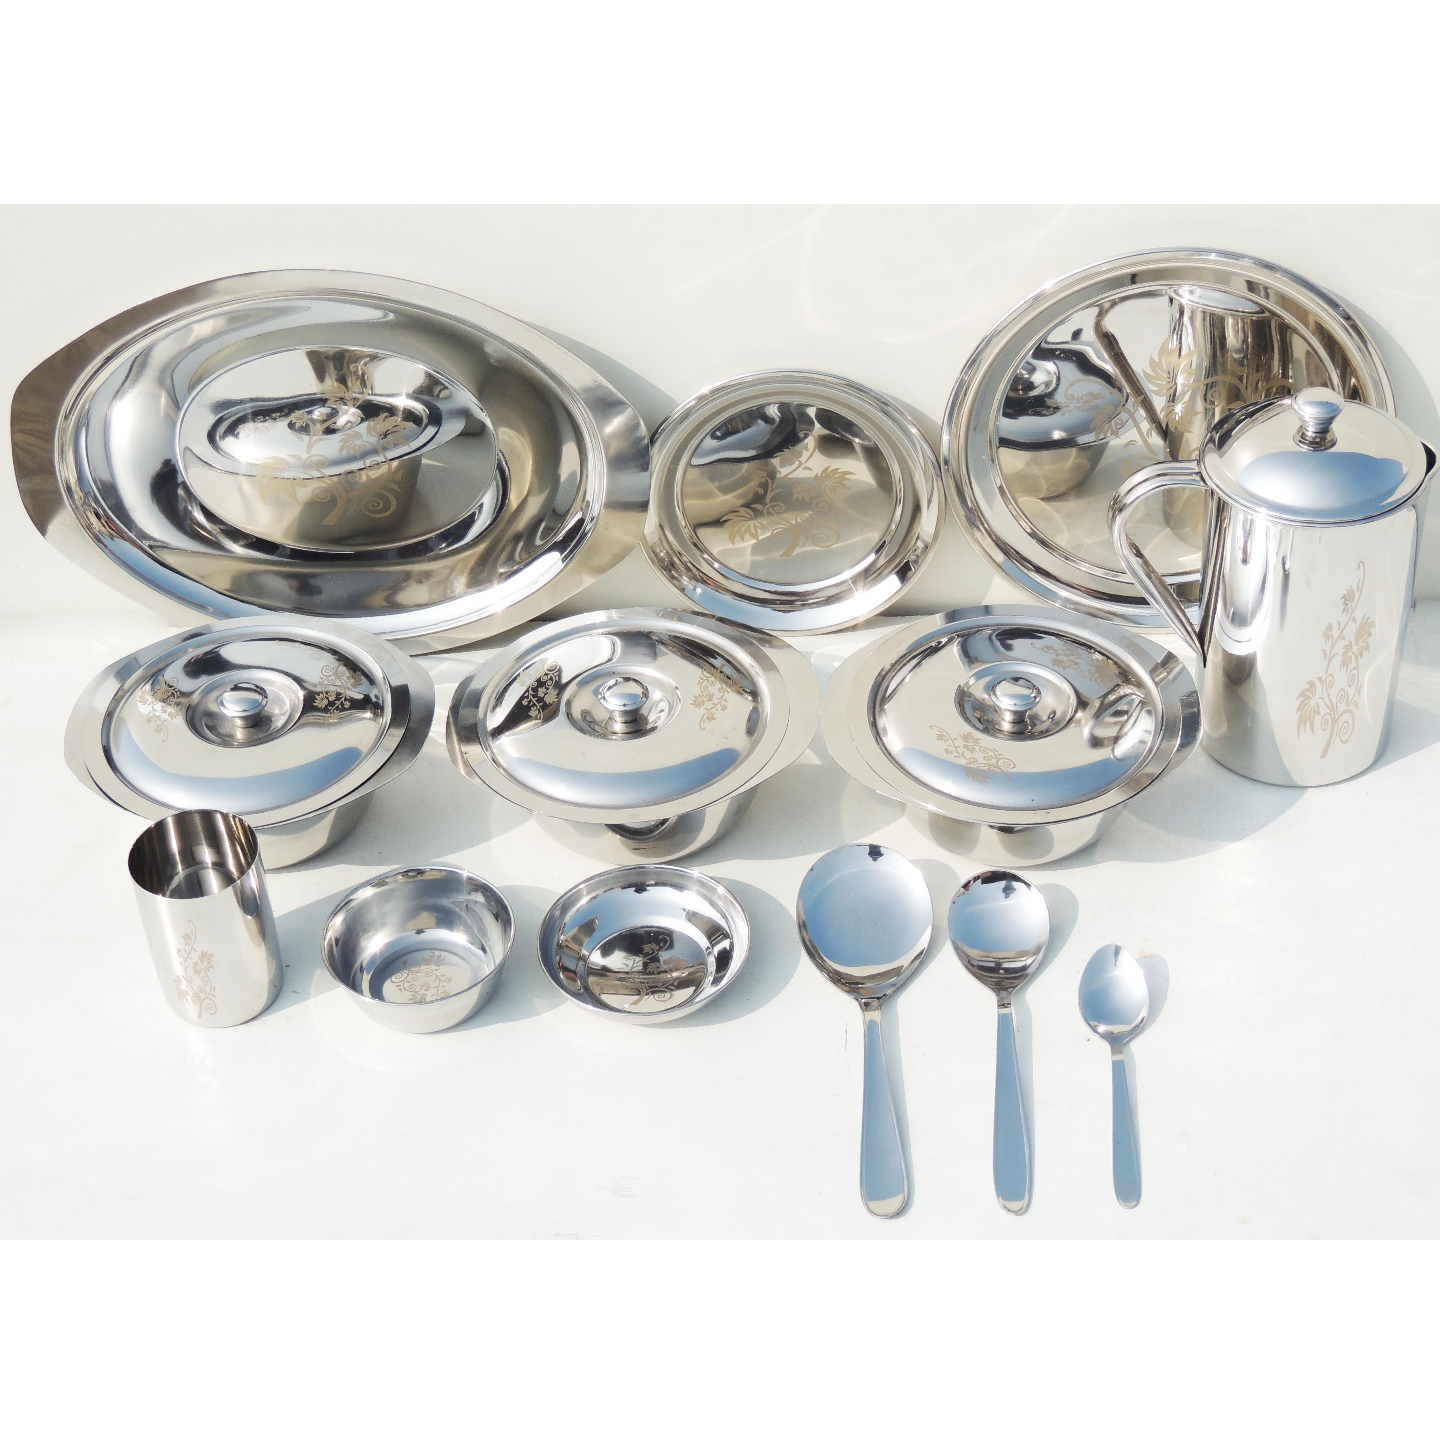 Steel Dinner Set Life Time 51 pcs - 6.8 kg with box S063 A